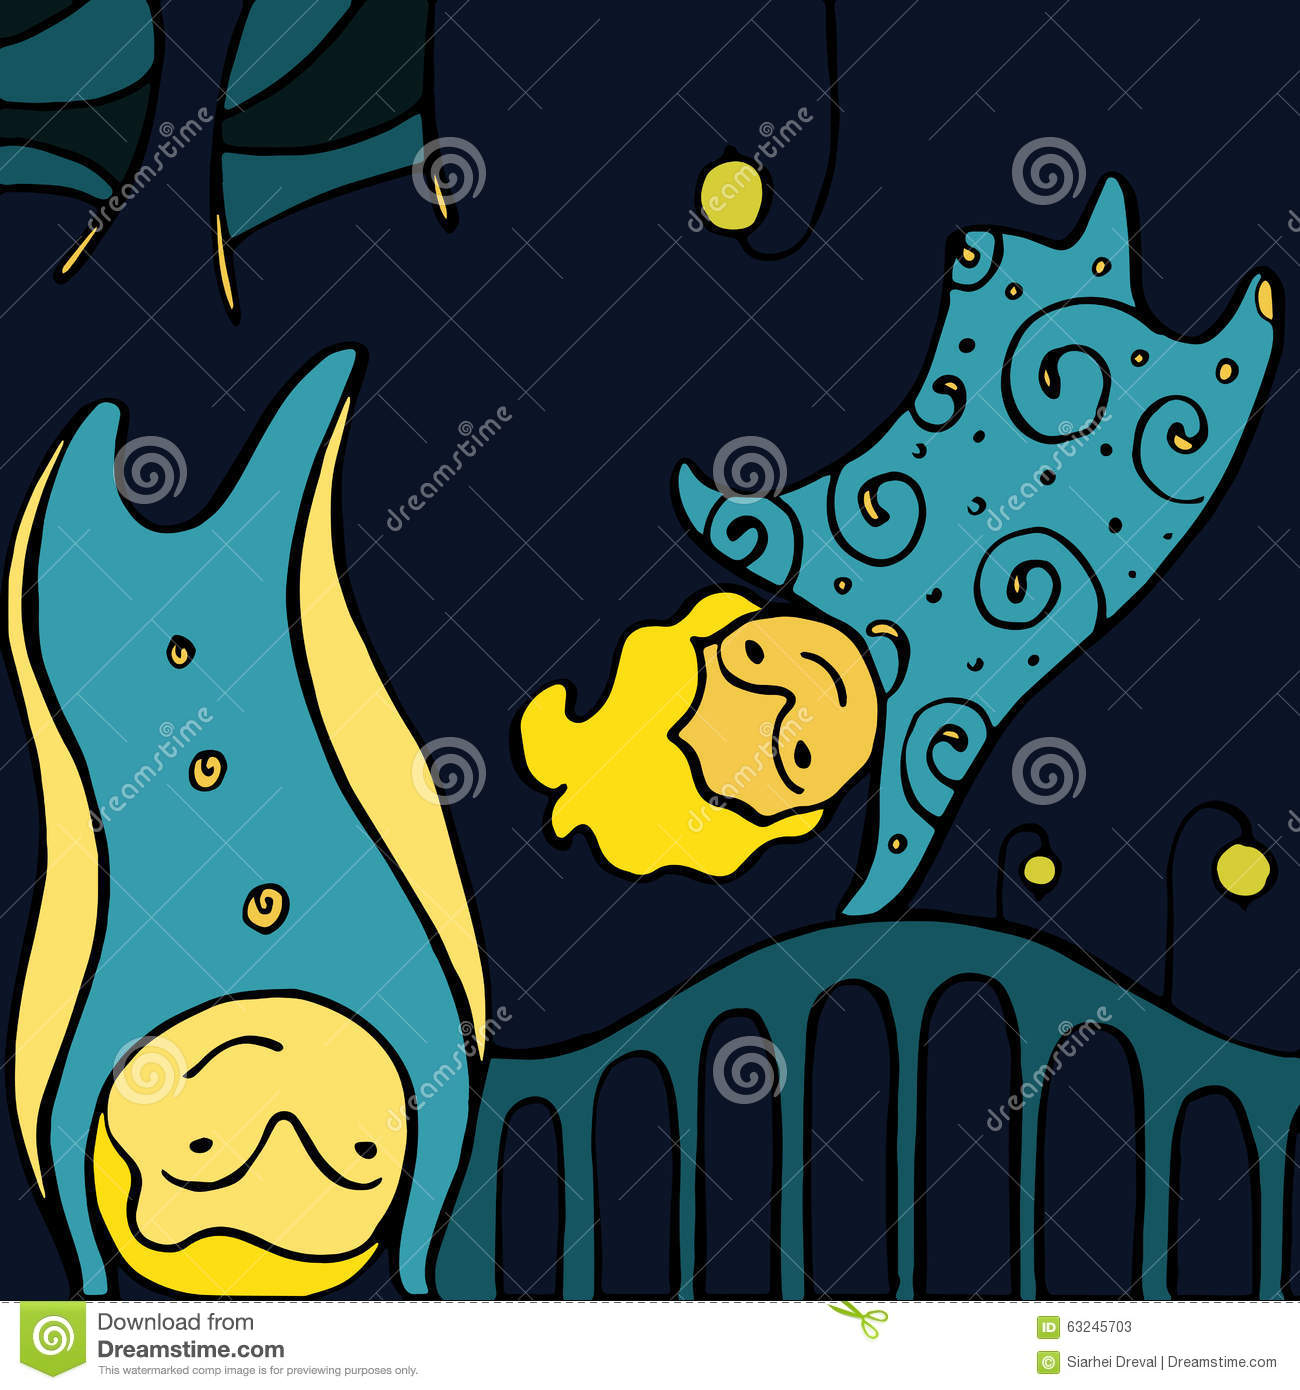 Cartoon Vector Wallpaper With Fairies Flying Hand Drawn